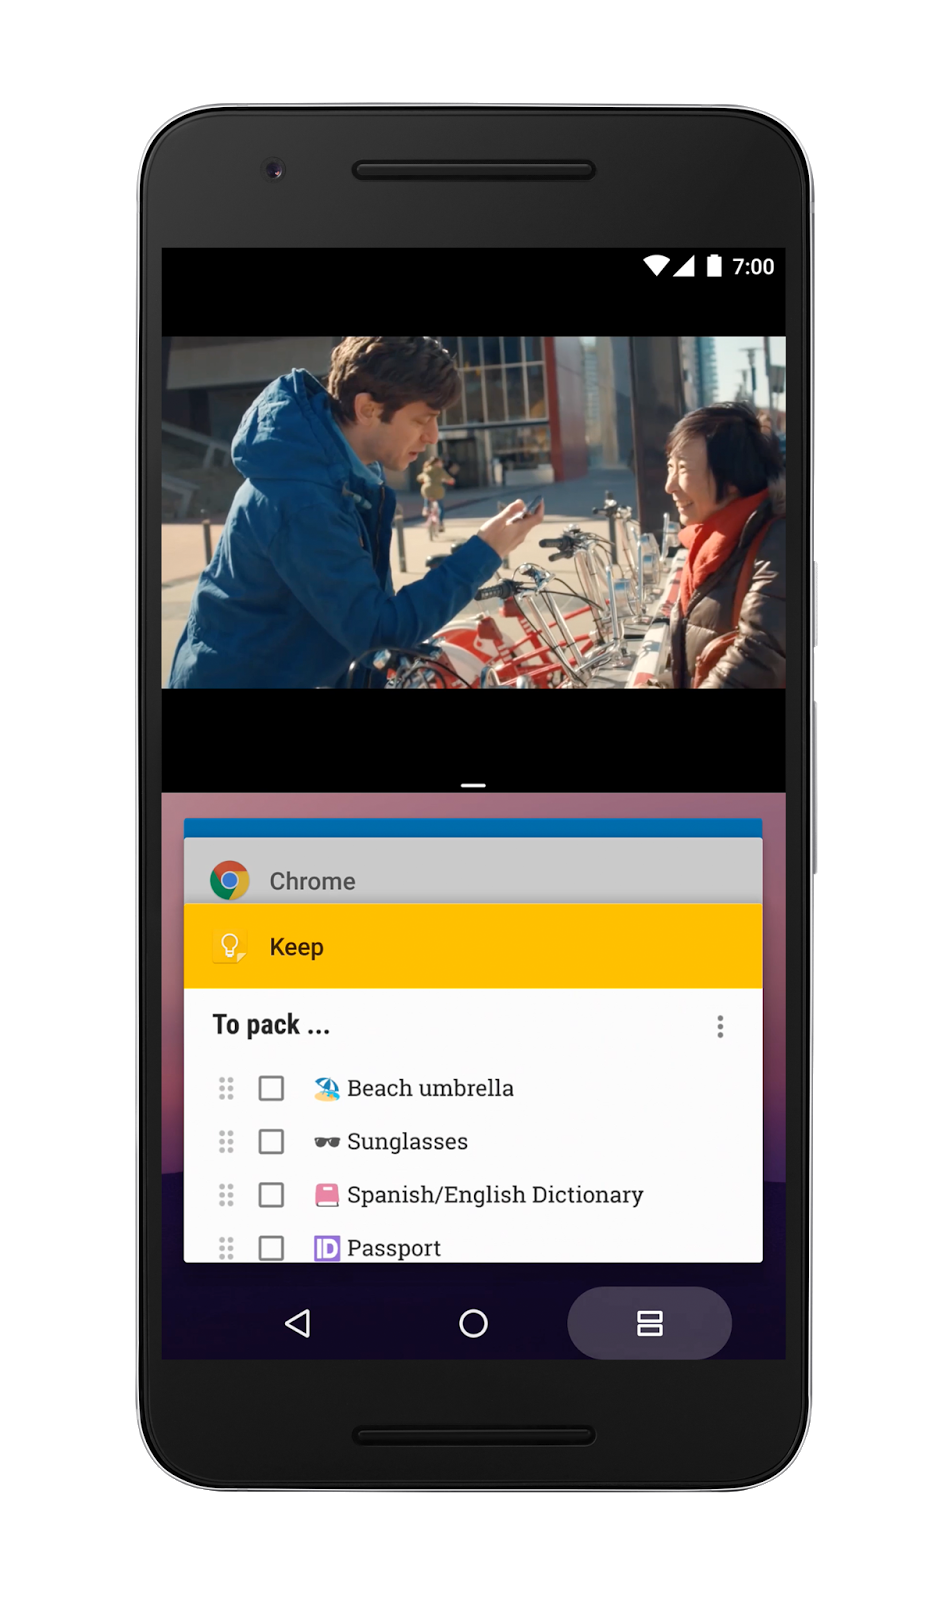 Android 7.0 Nougat Multi window